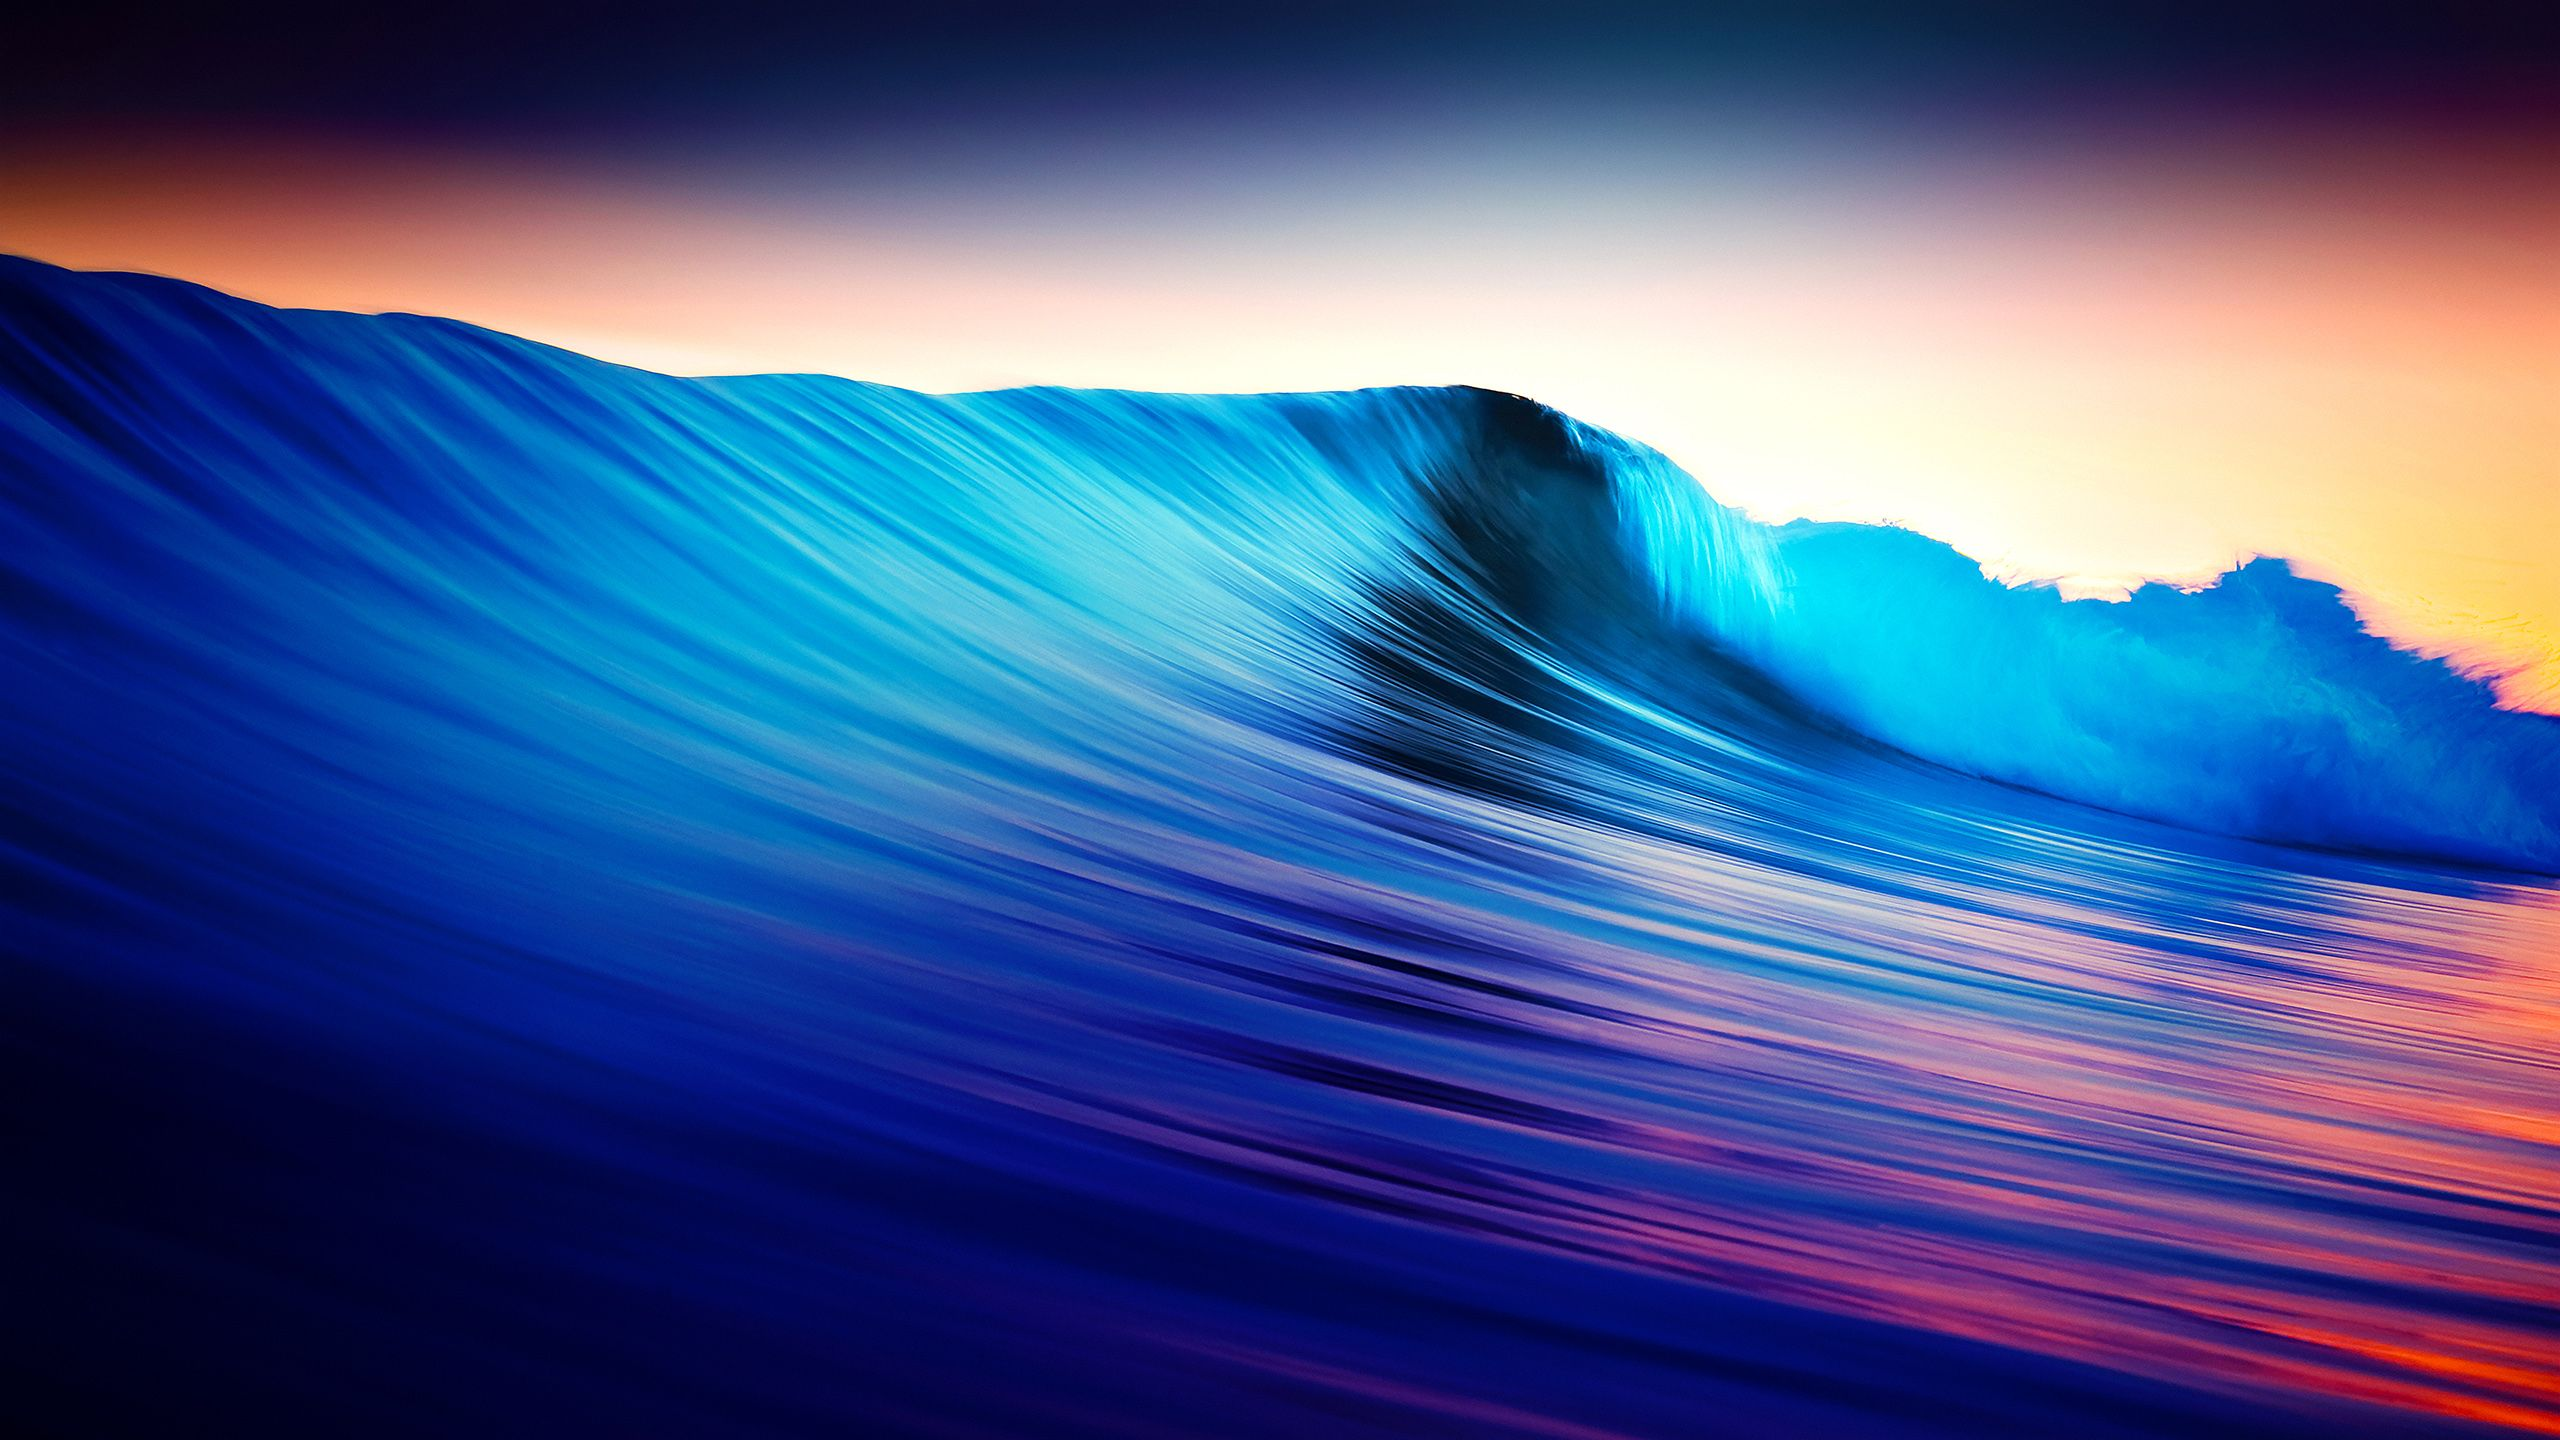 Rolling Waves Wallpapers Waves Wallpaper Nature Wallpaper 3840x2160 Wallpaper